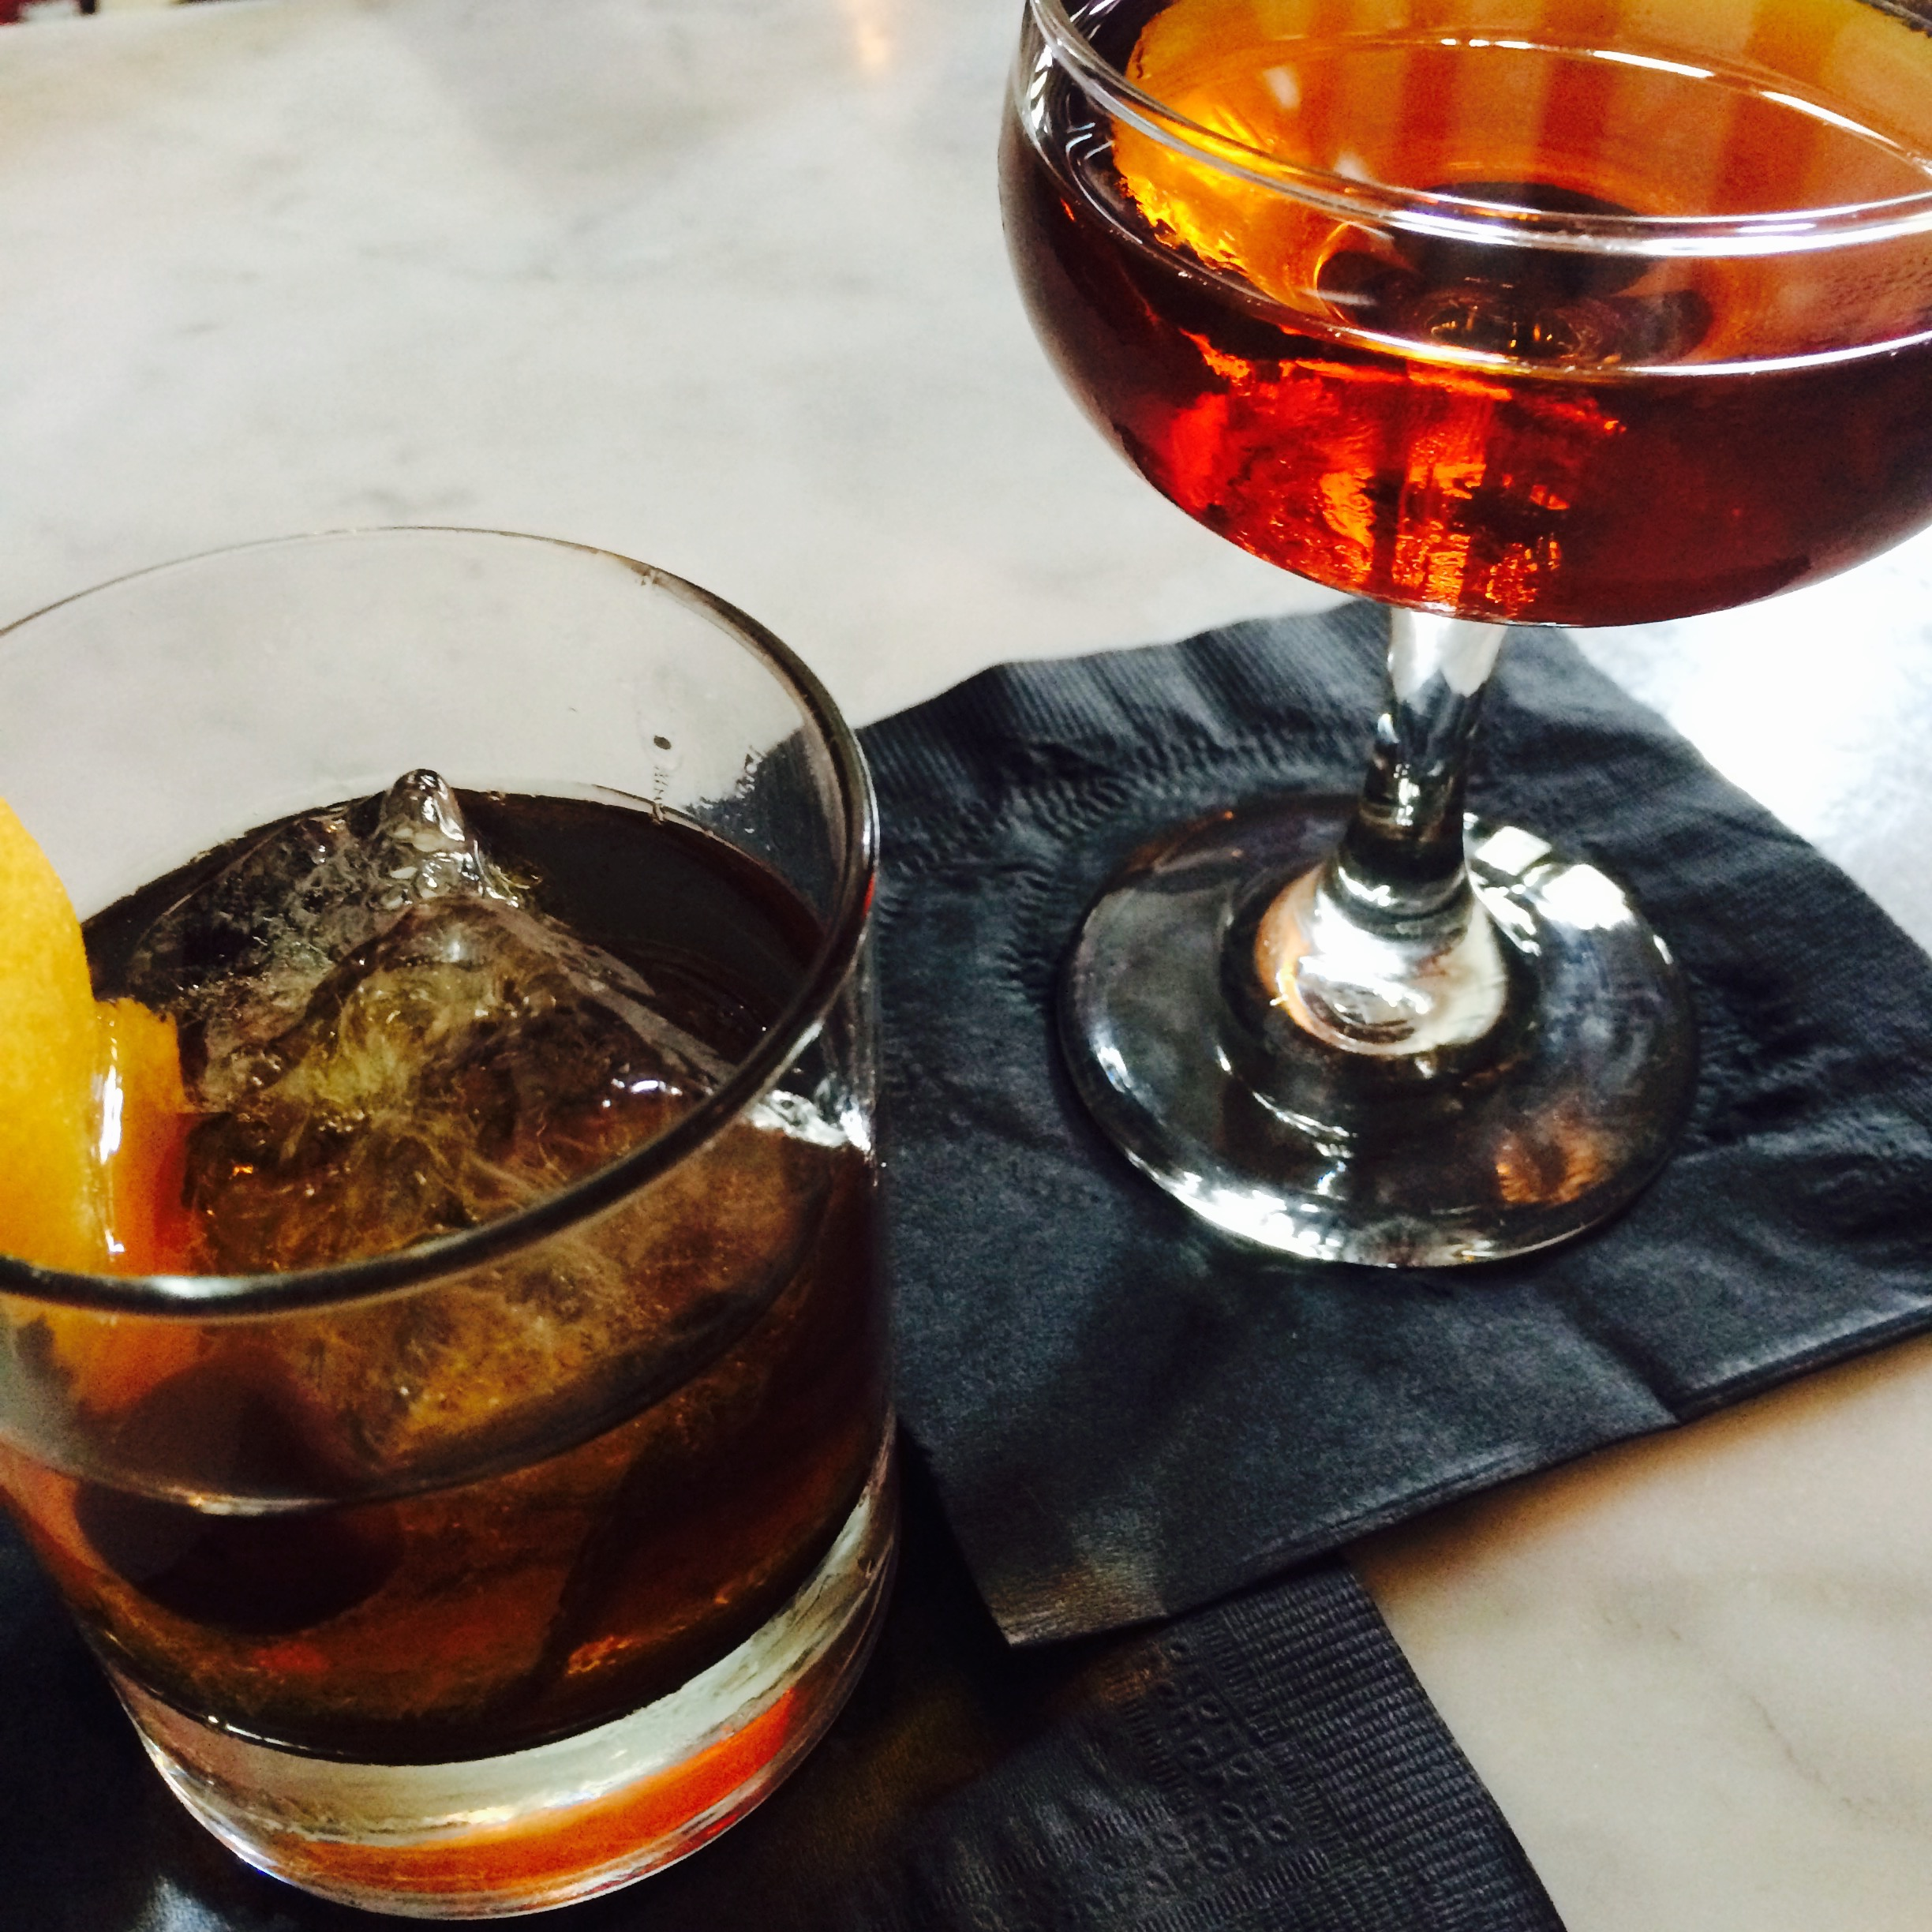 Cricket Old Fashioned & Peater Rabbit at Uva.